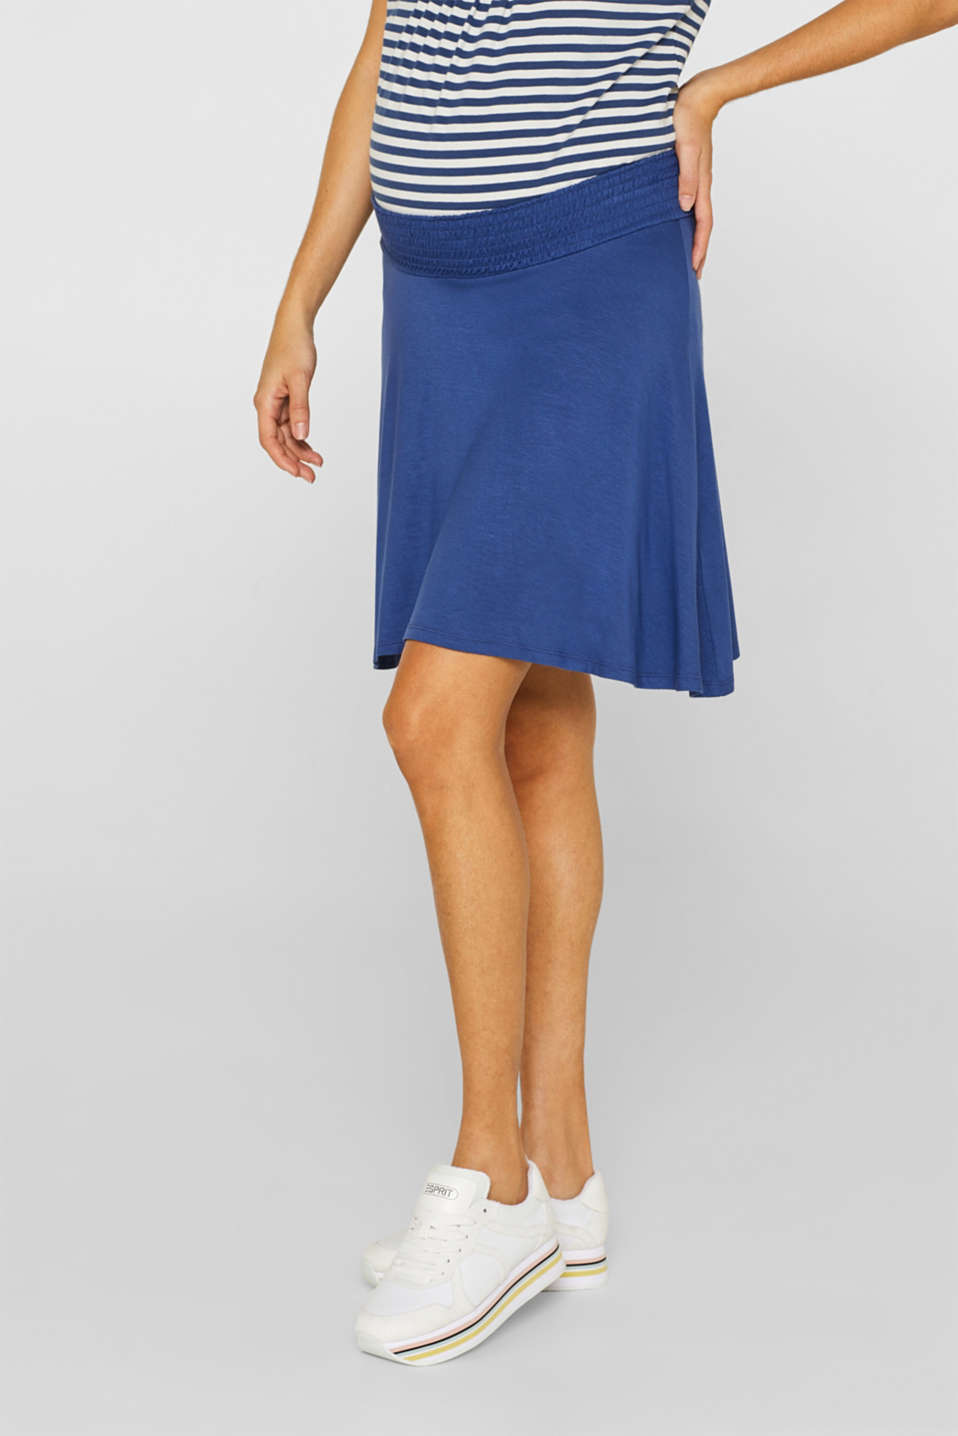 Stretch jersey skirt with a wide elasticated waistband, LCDARK BLUE, detail image number 6